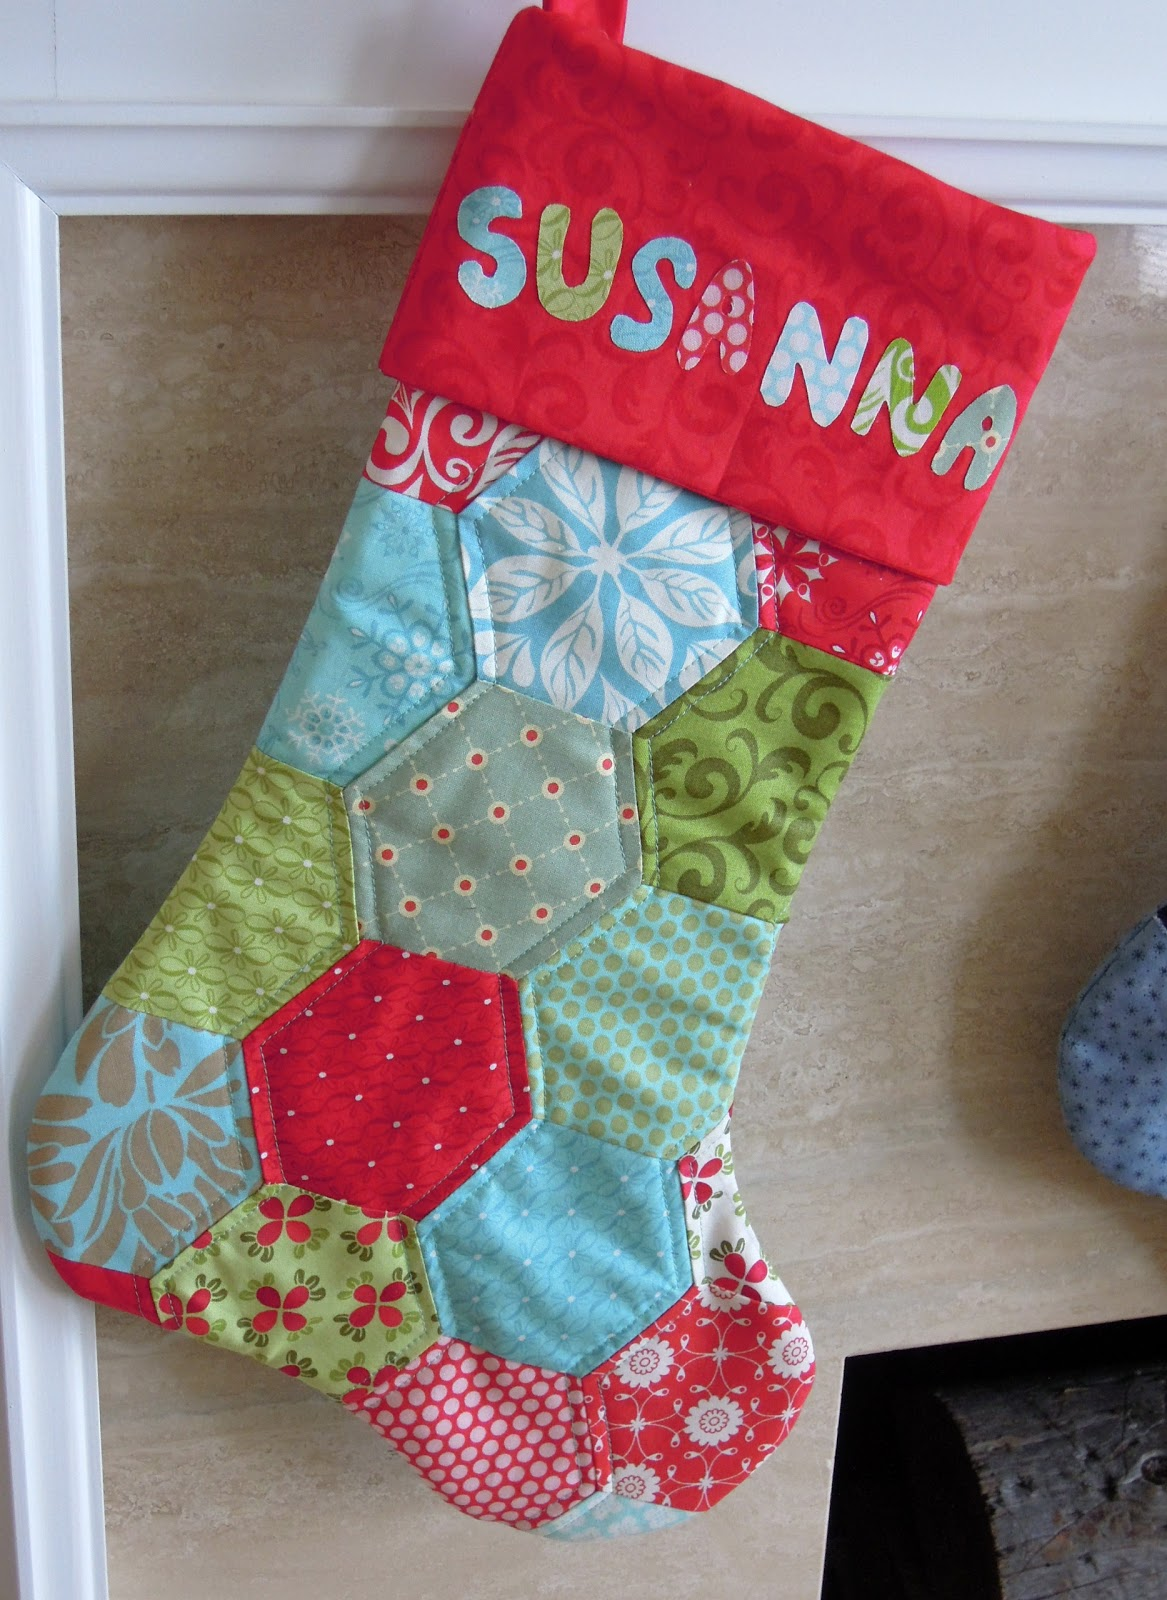 Handmade Christmas Stockings Quilting Barbie Handmade Christmas Stockings